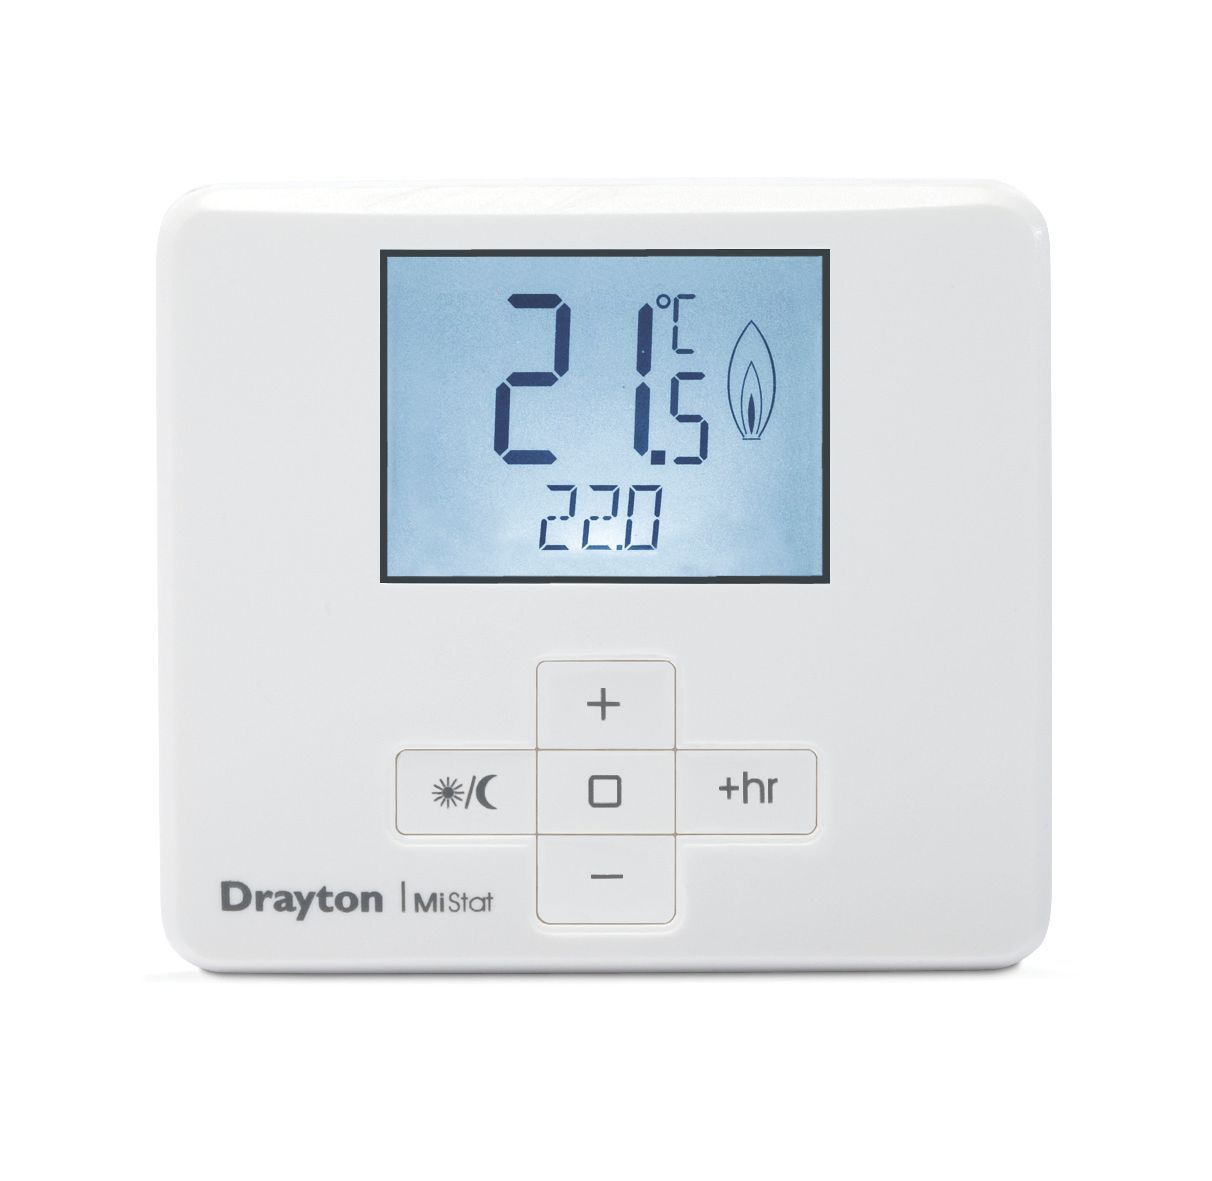 5016254201037_01c thermostats & heating controls smart thermostats diy at b&q drayton digistat 1 wiring diagram at creativeand.co